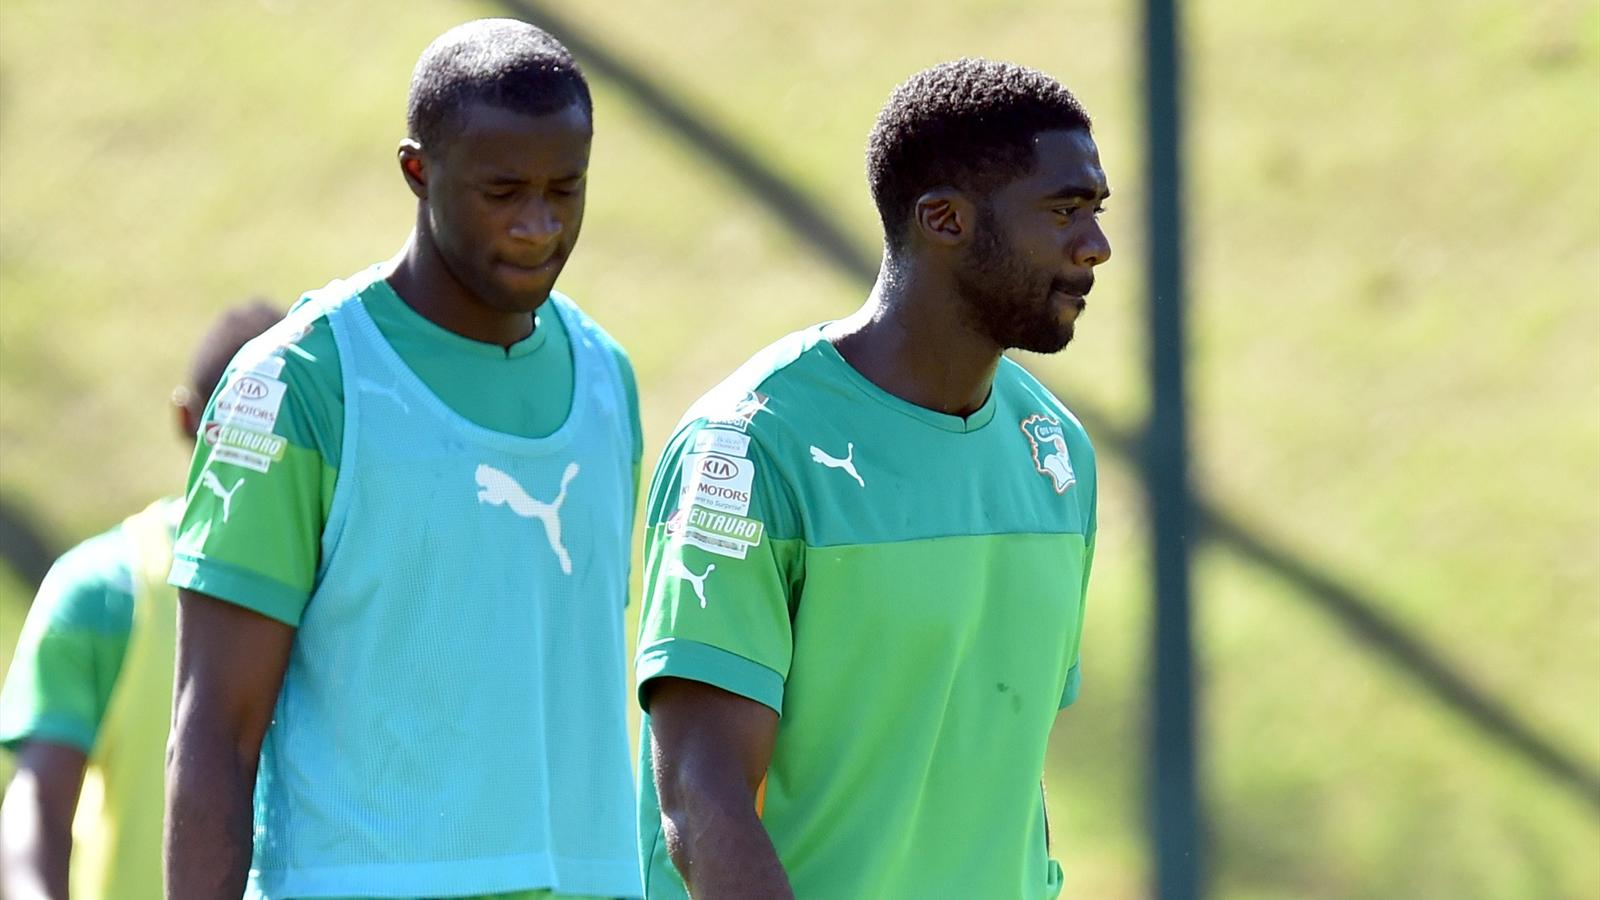 Ivory Coast's midfielder Yaya Toure and Ivory Coast's defender Kolo Toure take part in a training session in Aguas de Lindoia, Brazil